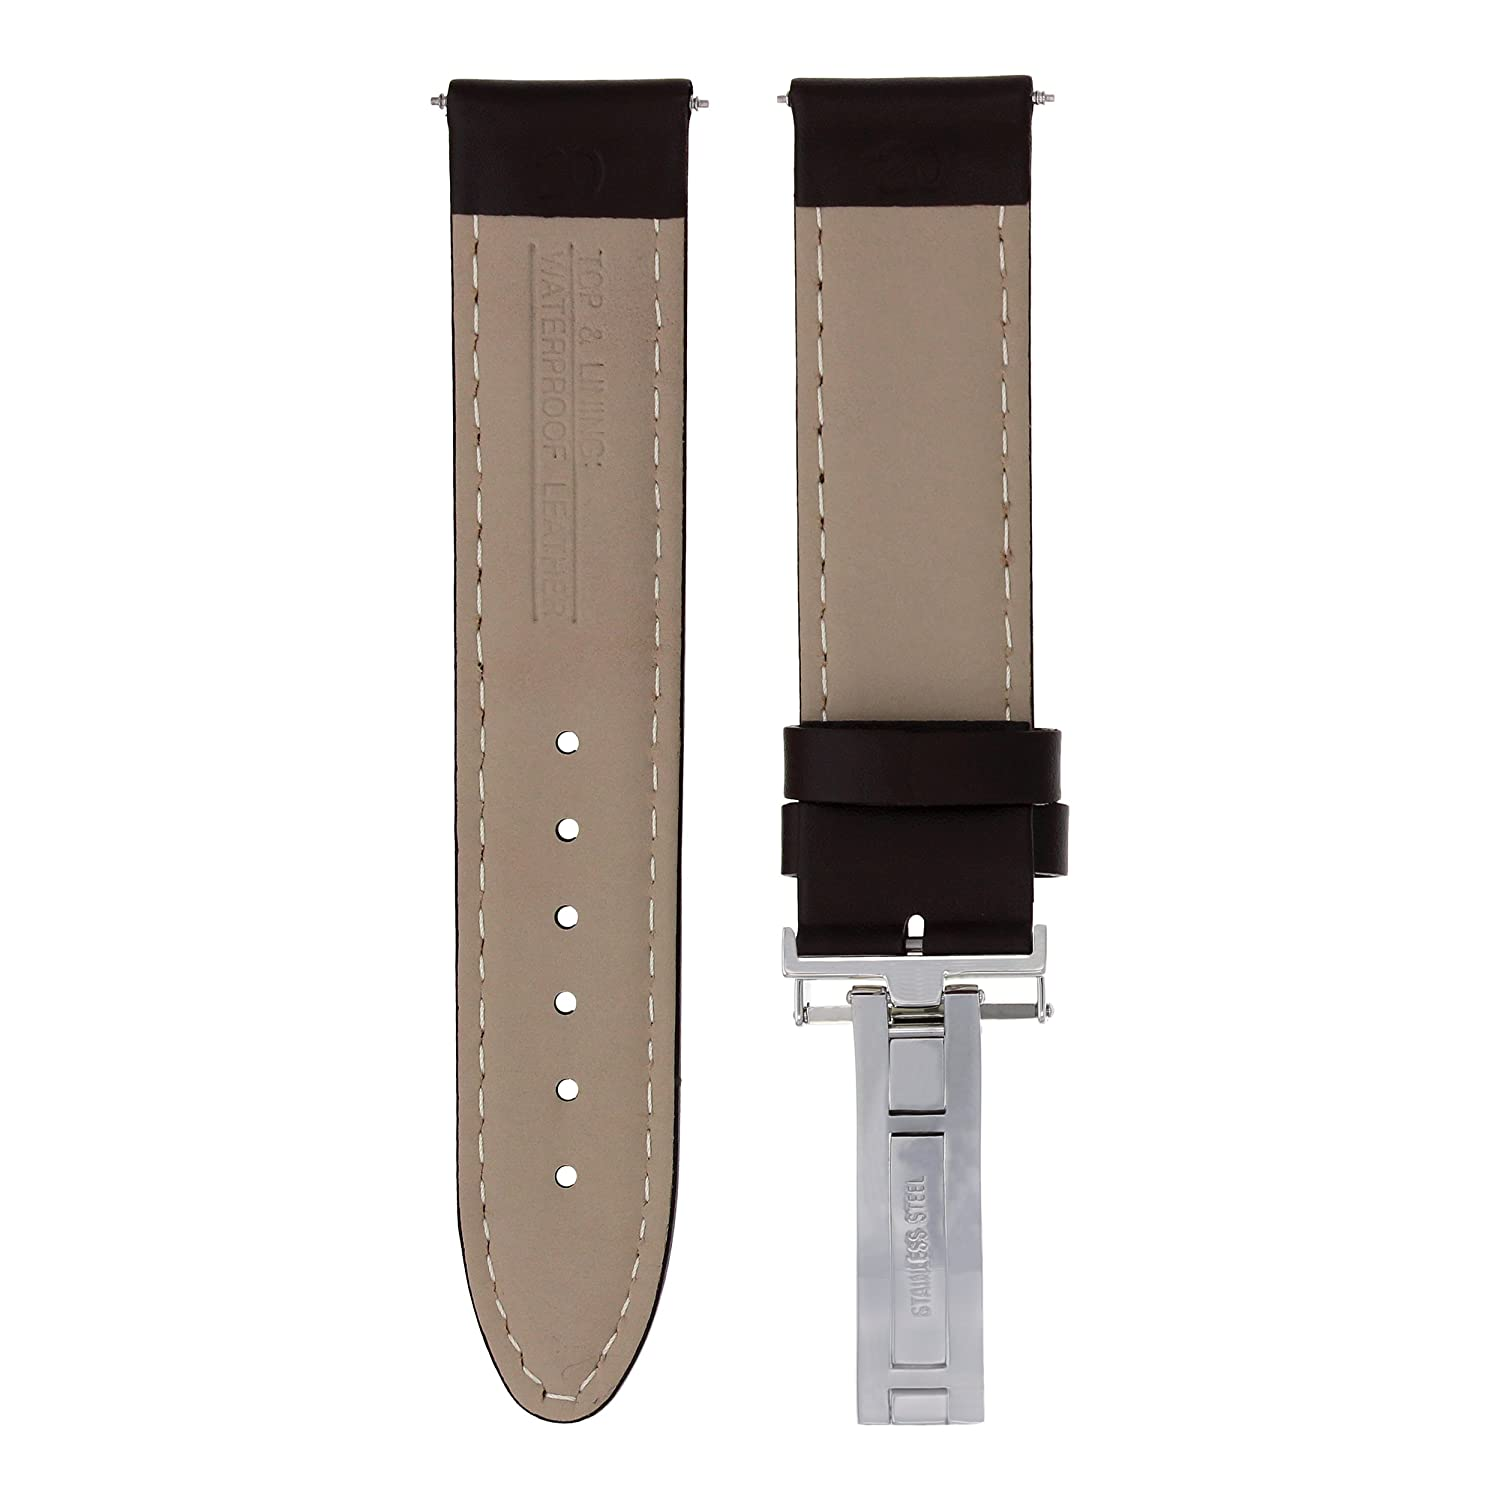 ffbc43eef 18MM Smooth Calf Leather Watch Band Strap Deployment Clasp for IWC Dark  Brown #8 | Amazon.com